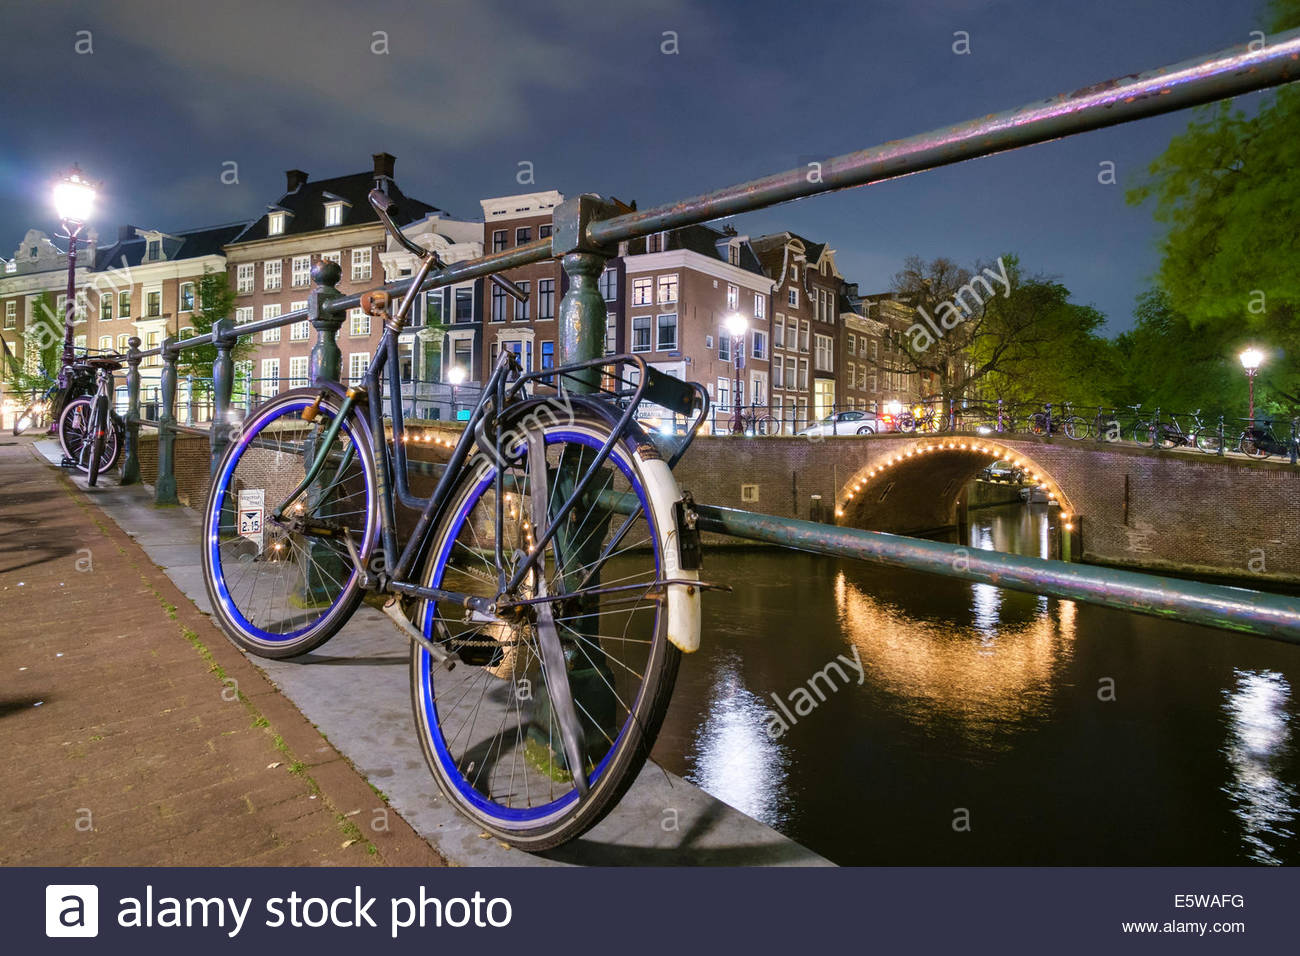 Bicycles along canal on the Herengracht at Reguliersgracht at night, Amsterdam, North Holland, Netherlands - Stock Image